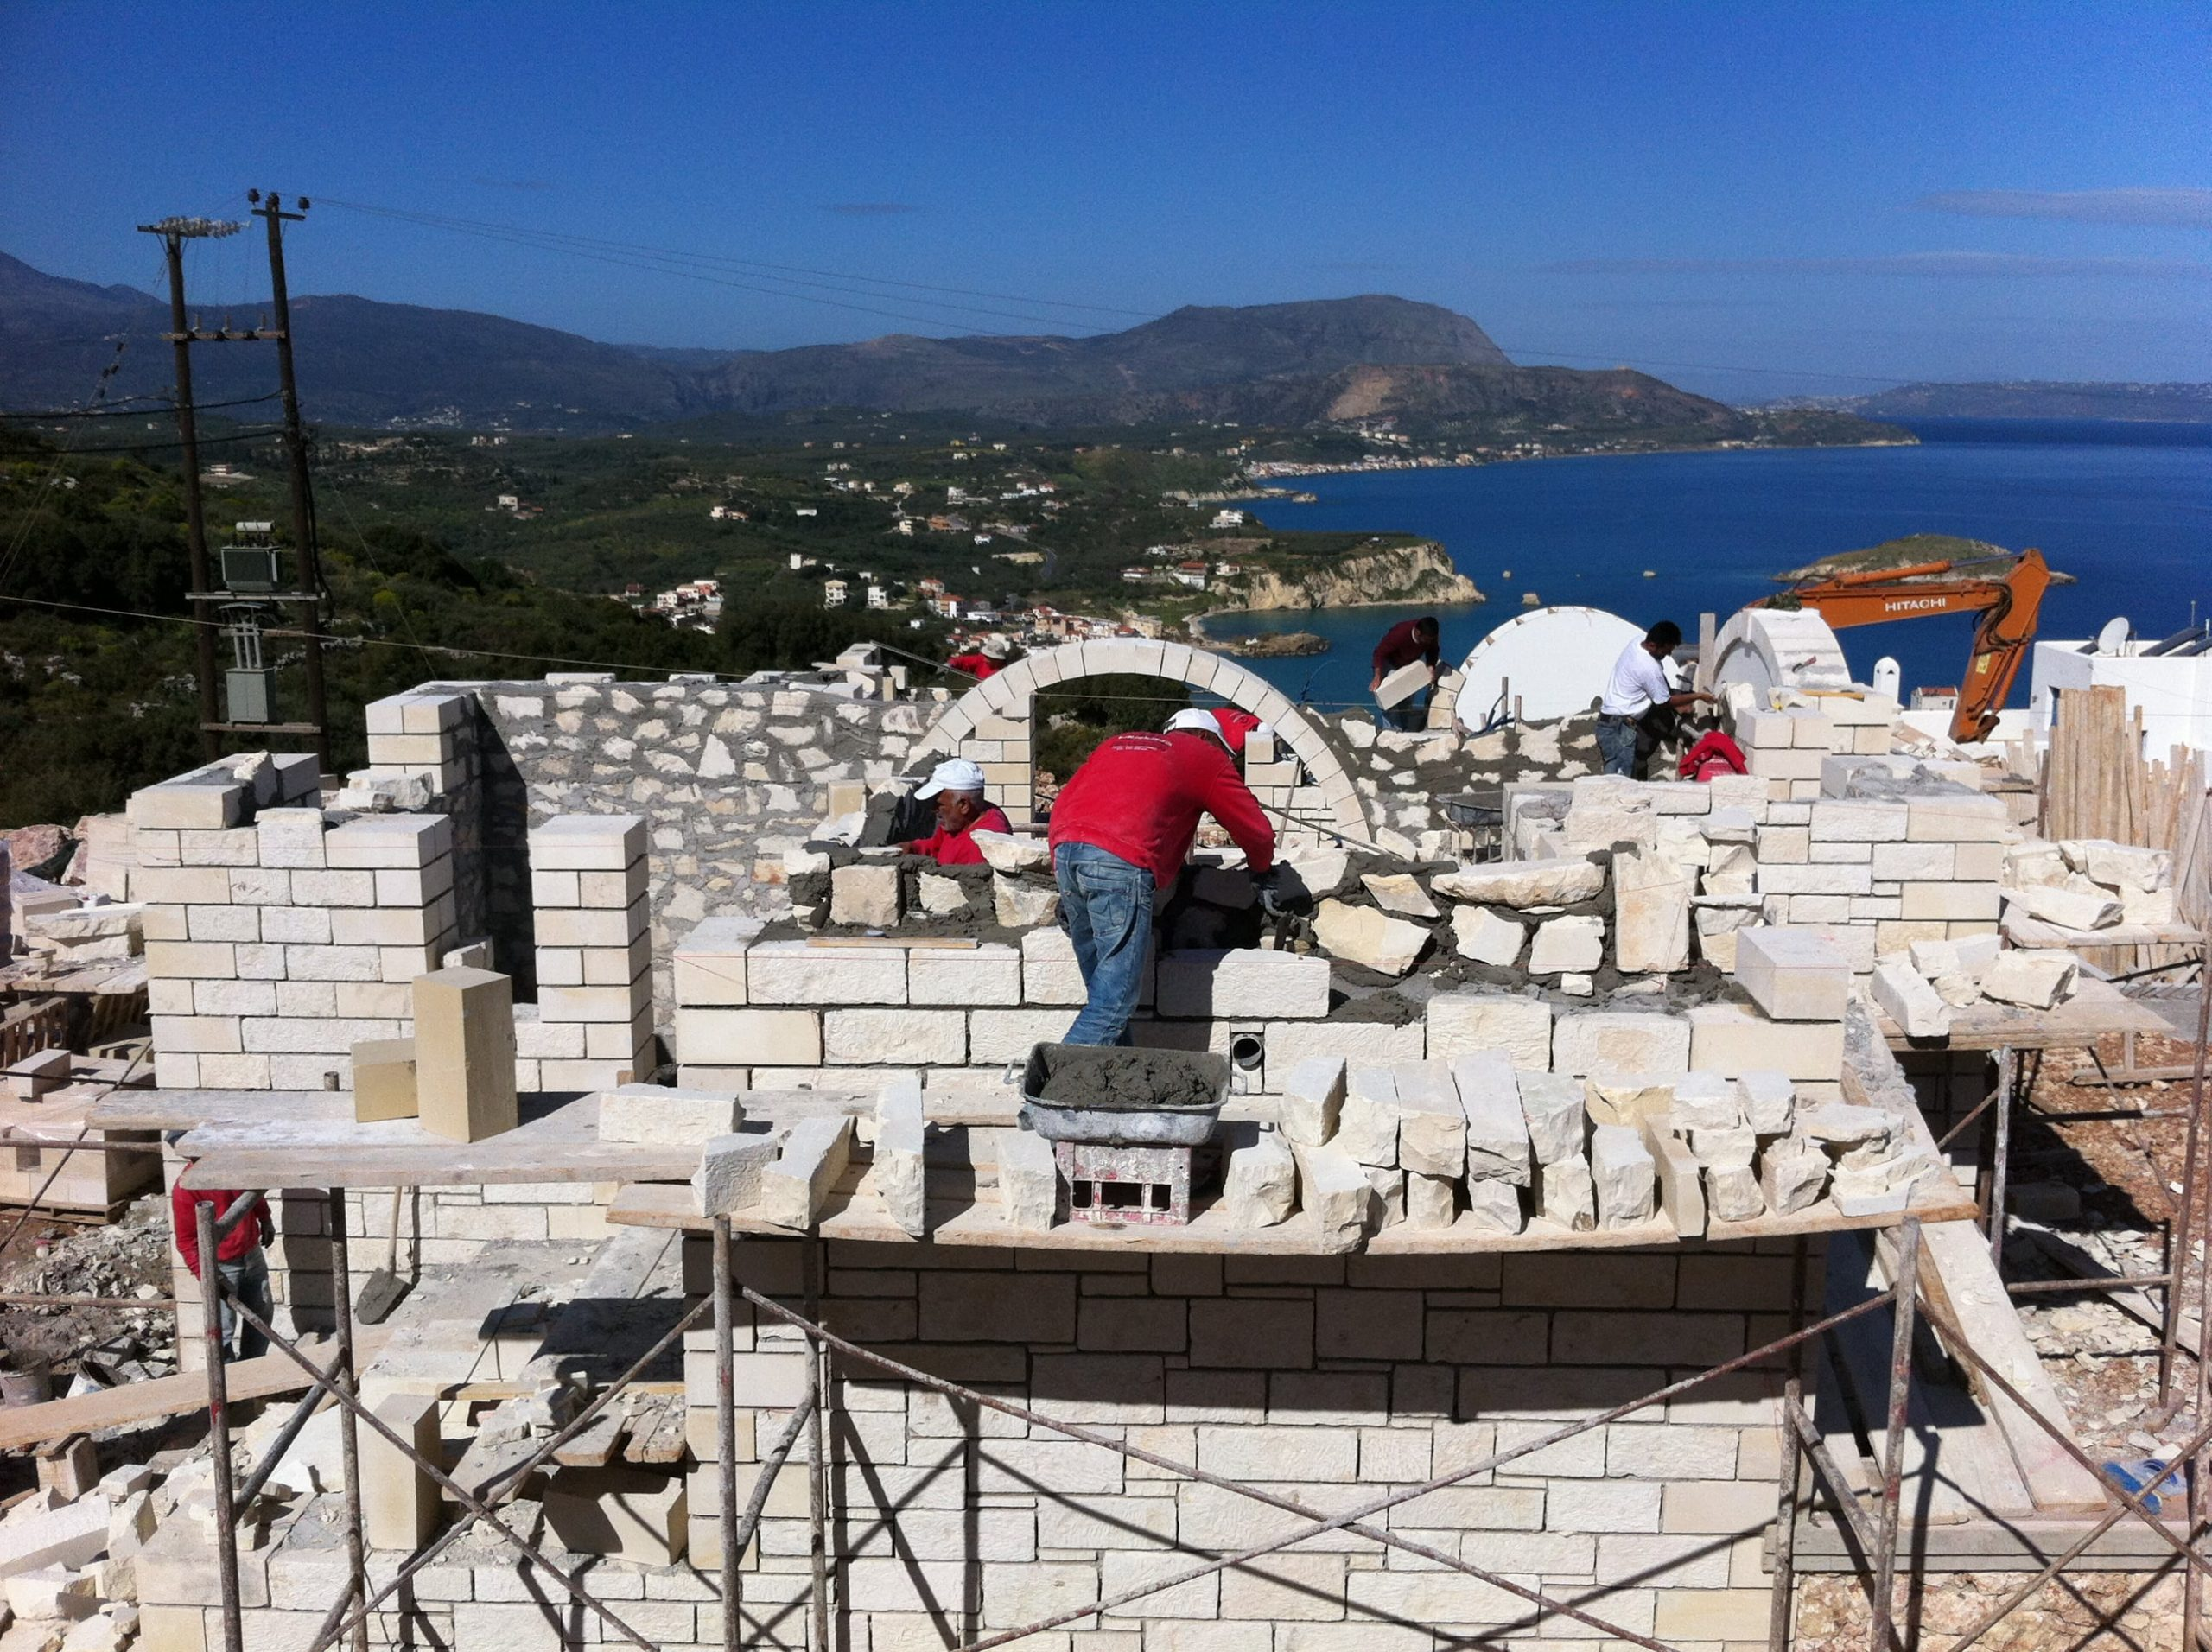 Construction Workers for ous villas in Crete- Kyriakidis Construction Company